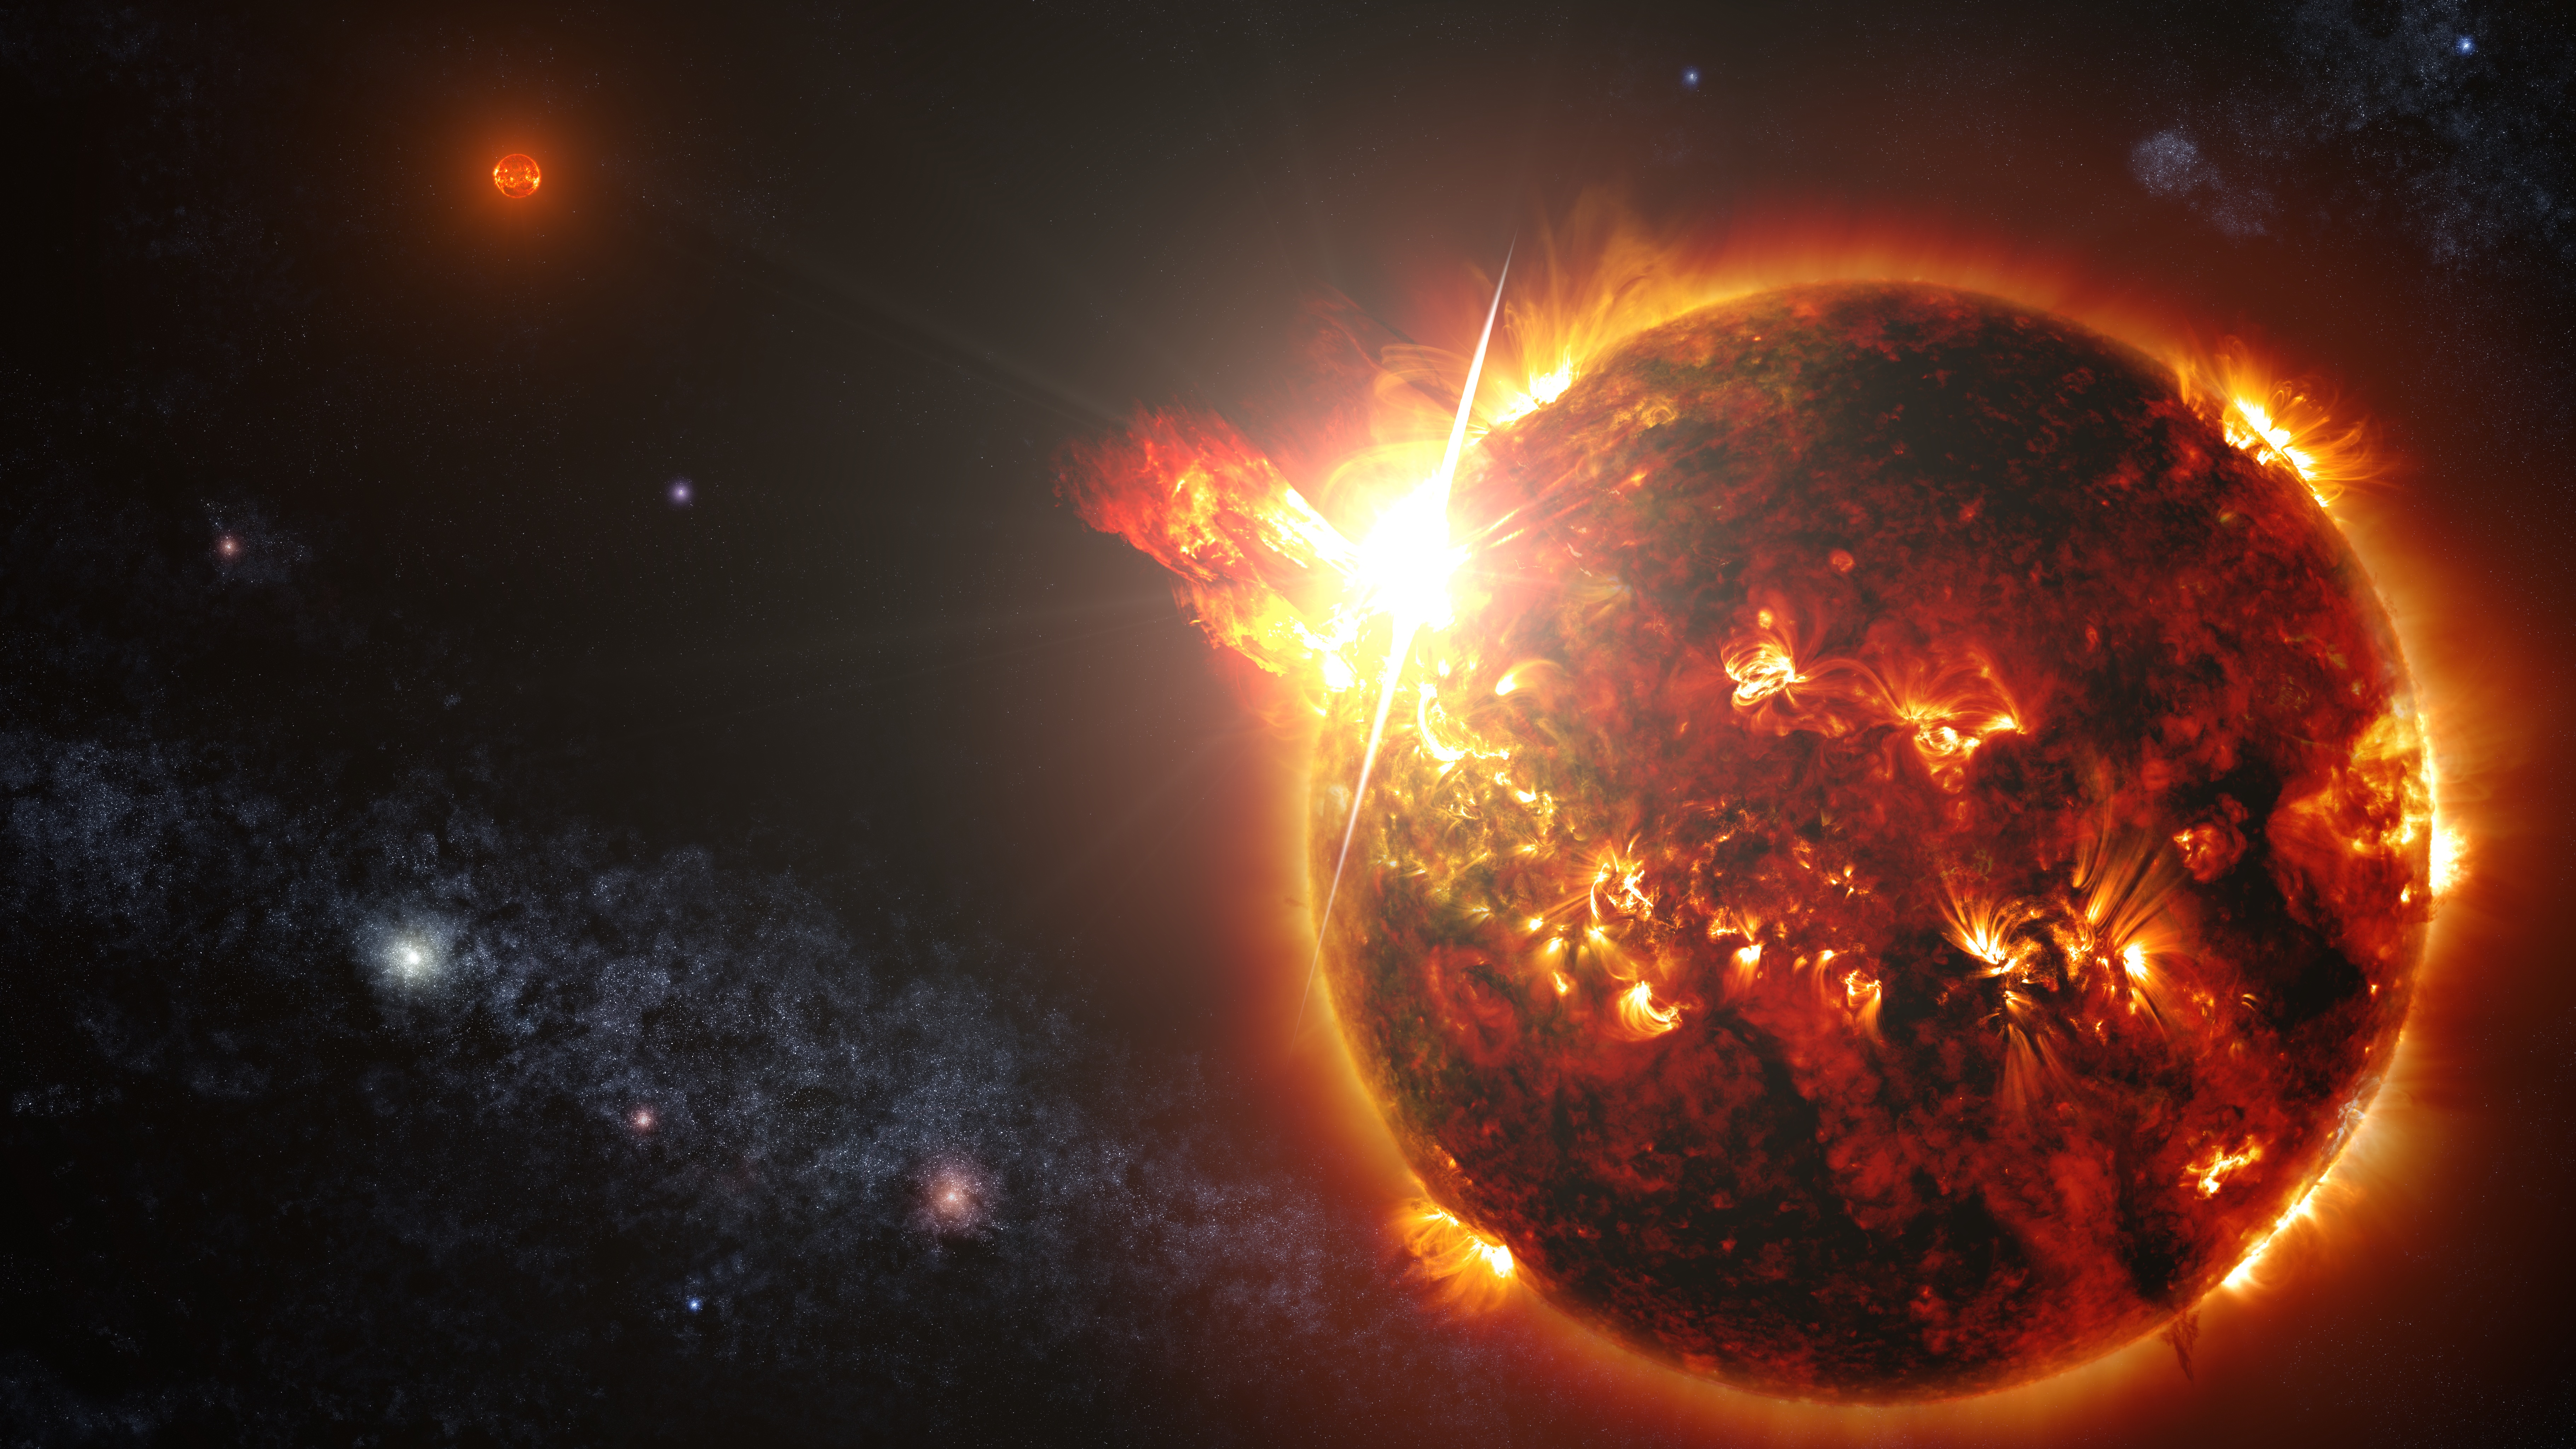 Astronomers-Spot-Largest-Brightest-Solar-Flare-Ever - Newsy Story